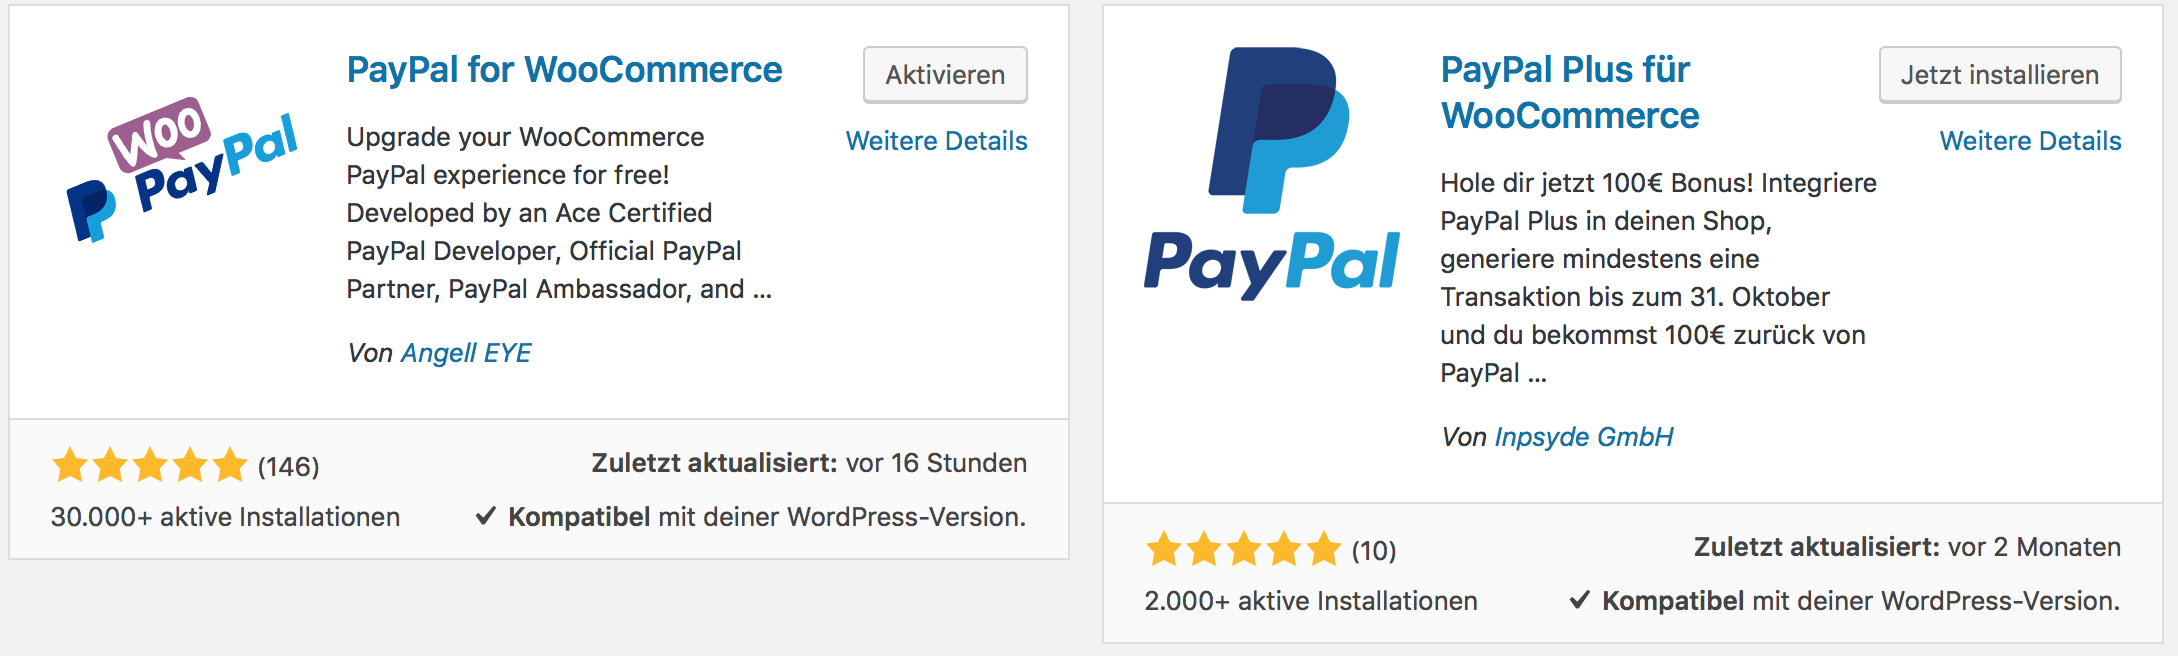 PayPal for WooCommerce und PayPal Plus für WooCommerce als Plugins